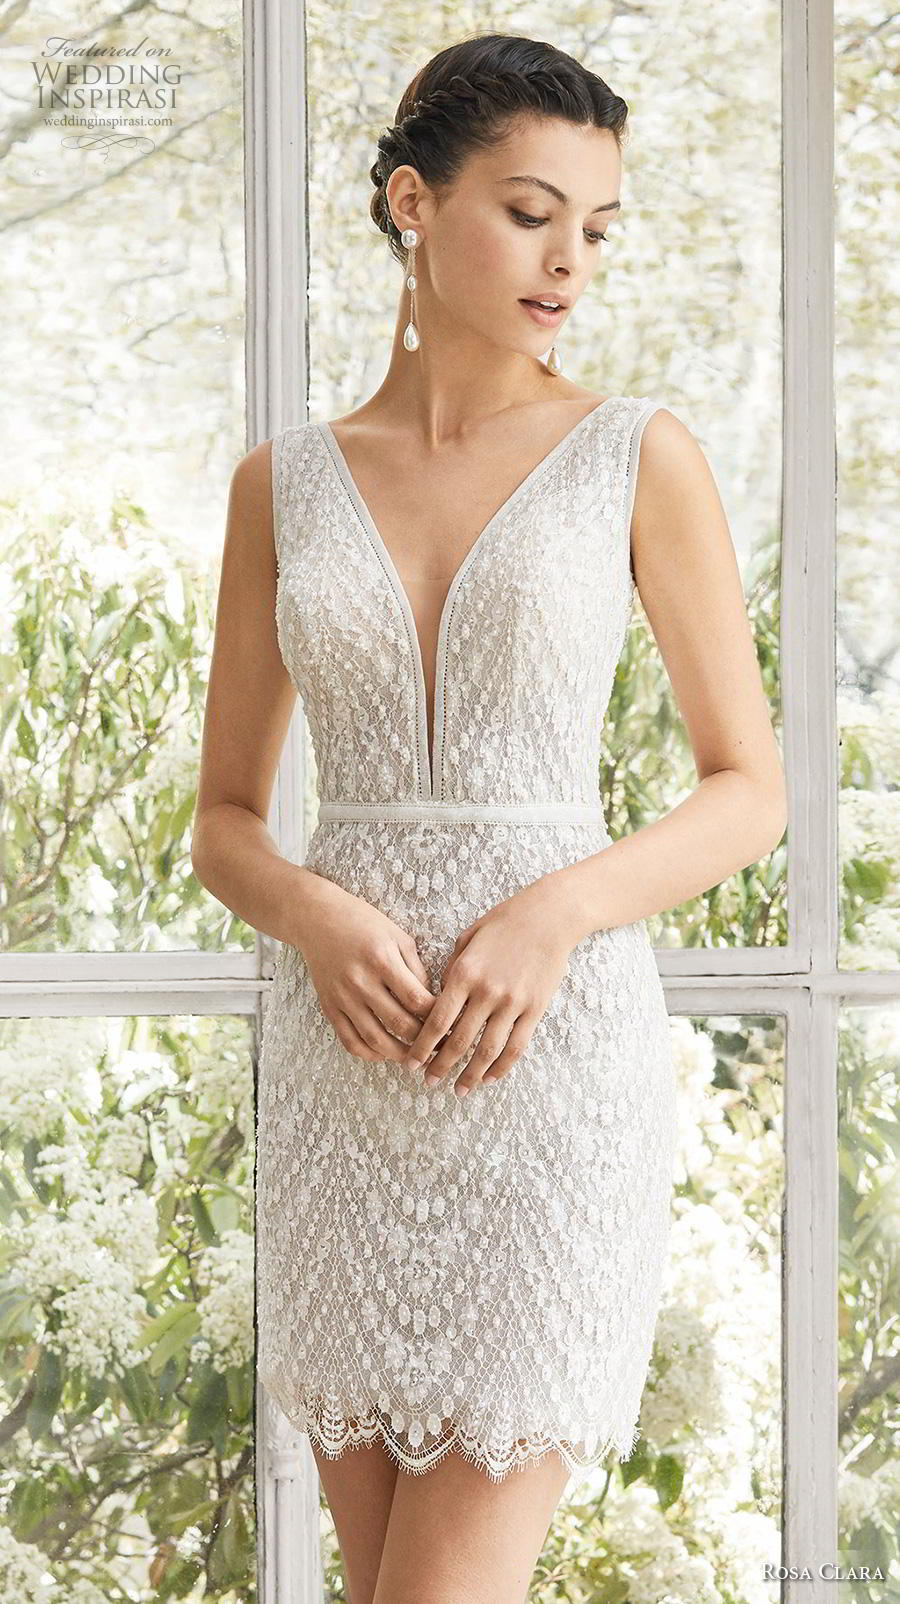 rosa clara 2019 couture bridal sleeveless deep v neck heavily embellished bodice romantic above the know mini short wedding dress backless medium train (6) zv